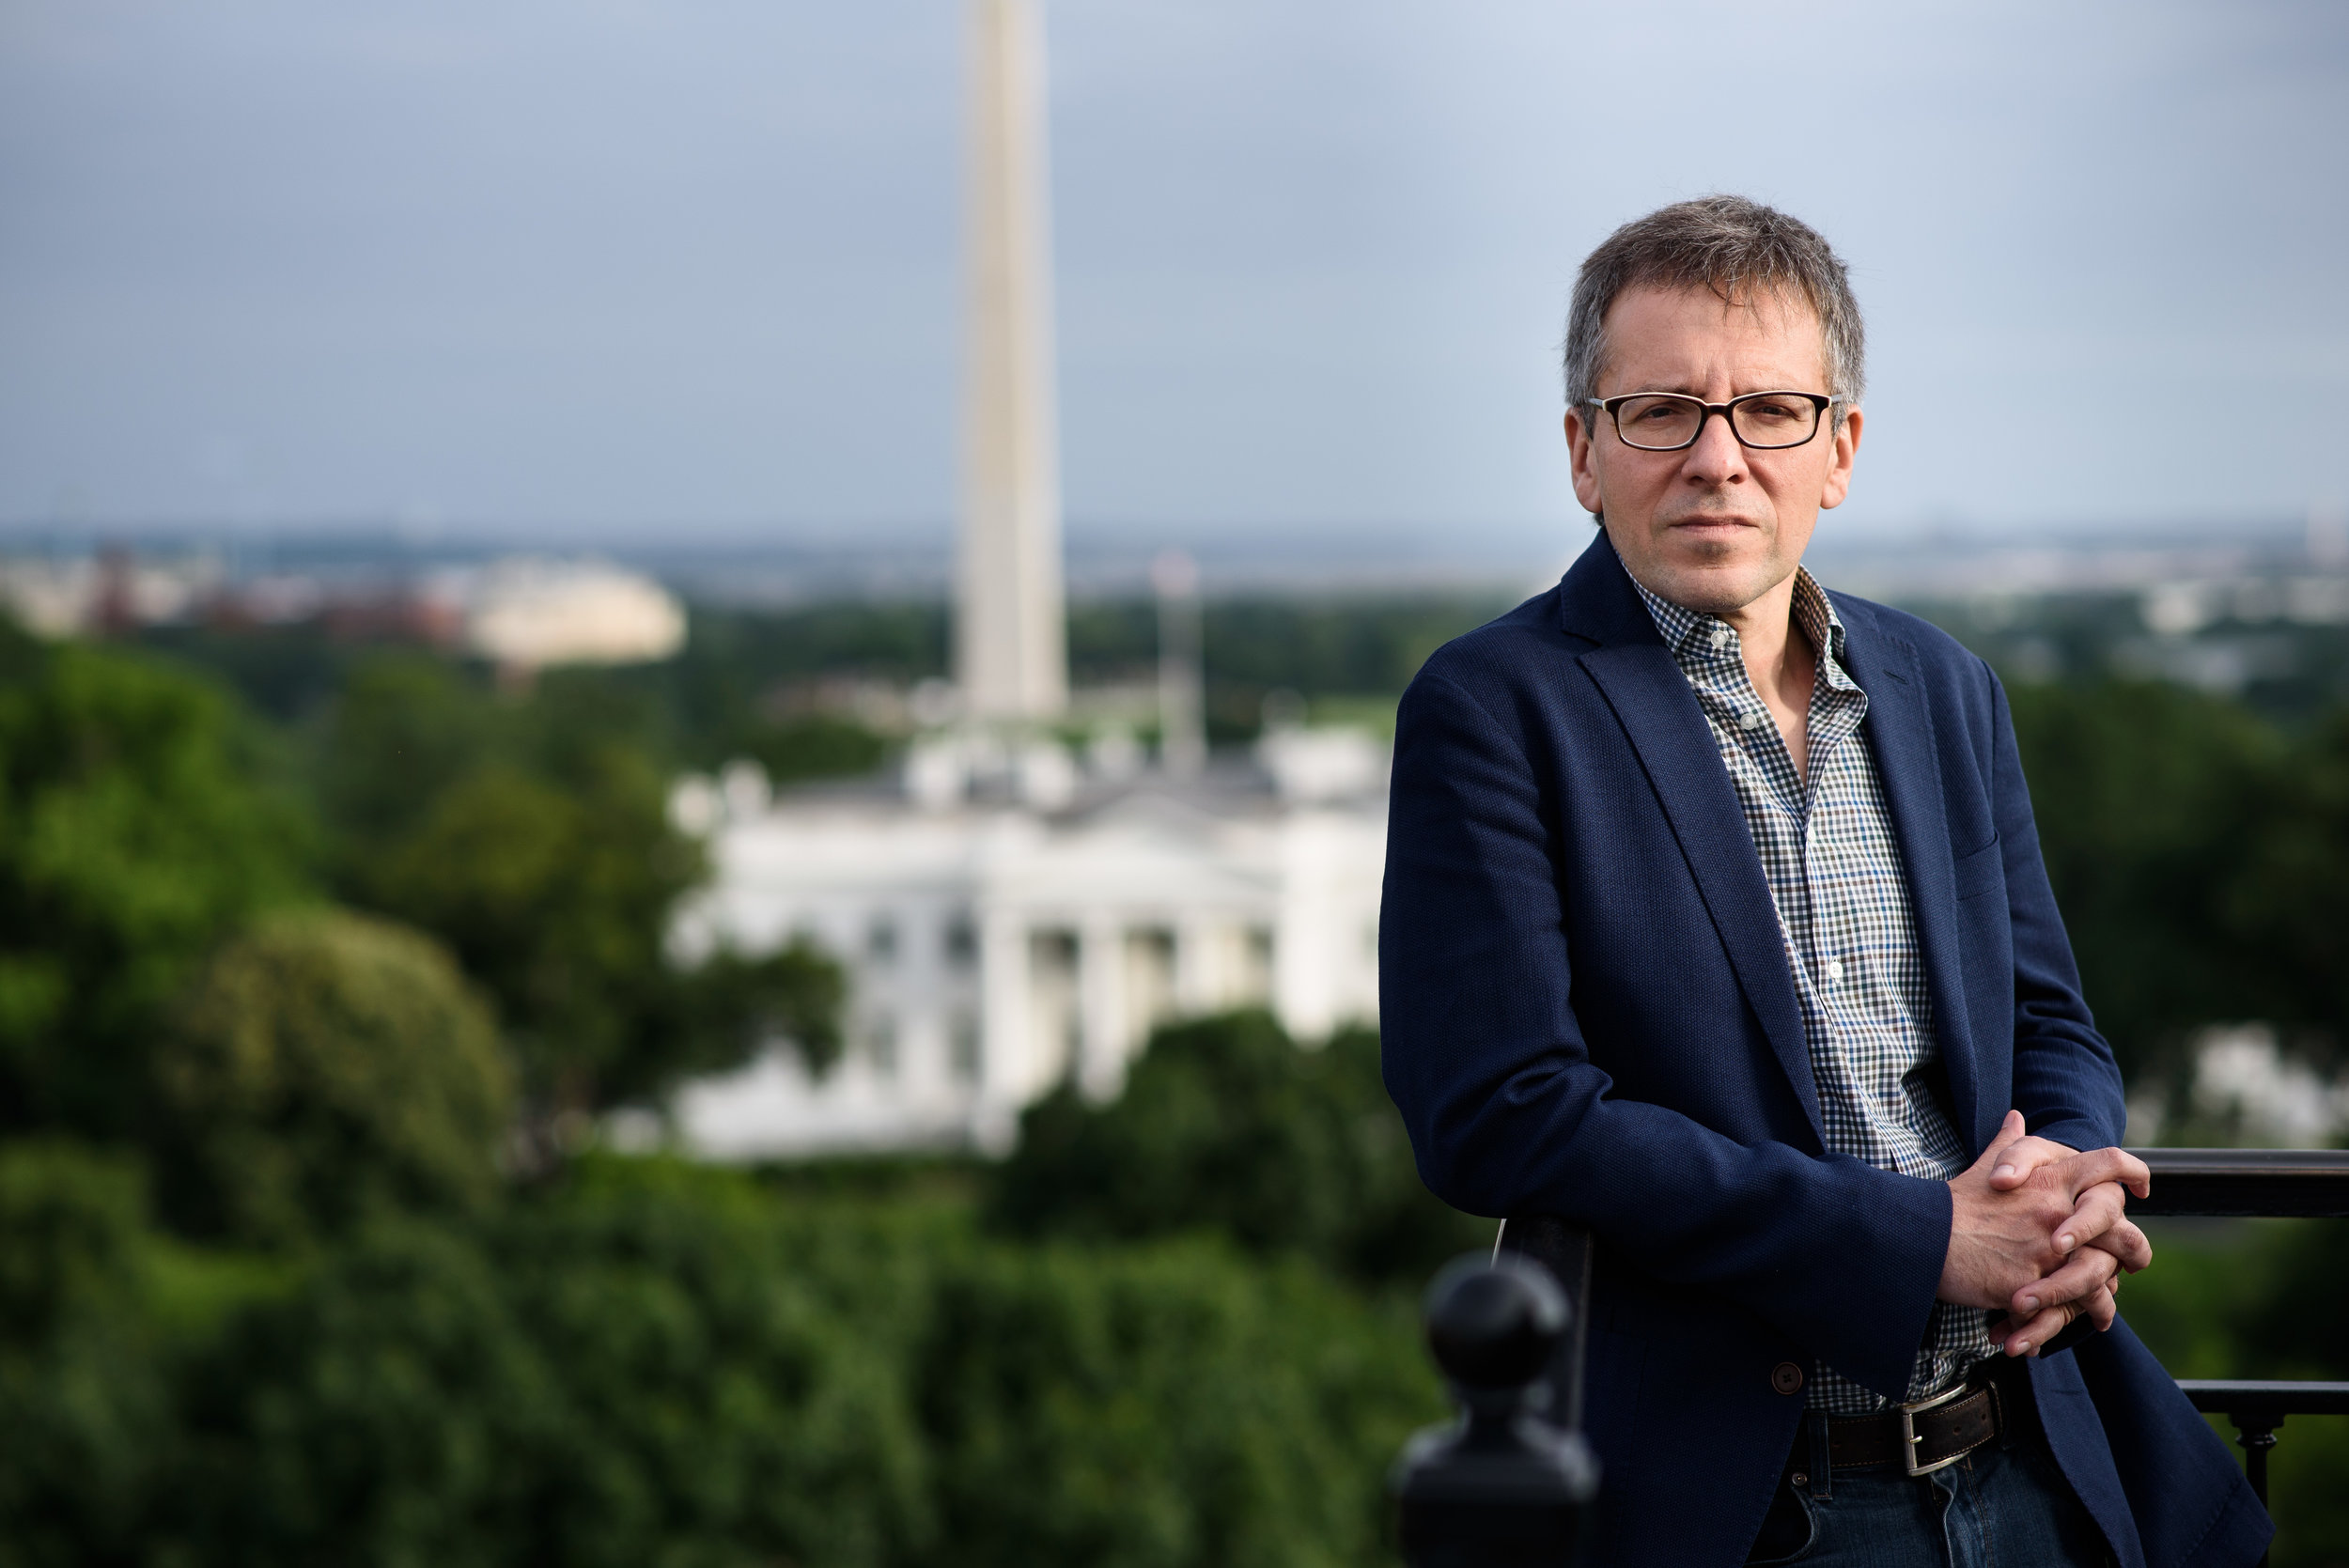 Ian Bremmer in front of the White House and Washington Monument.